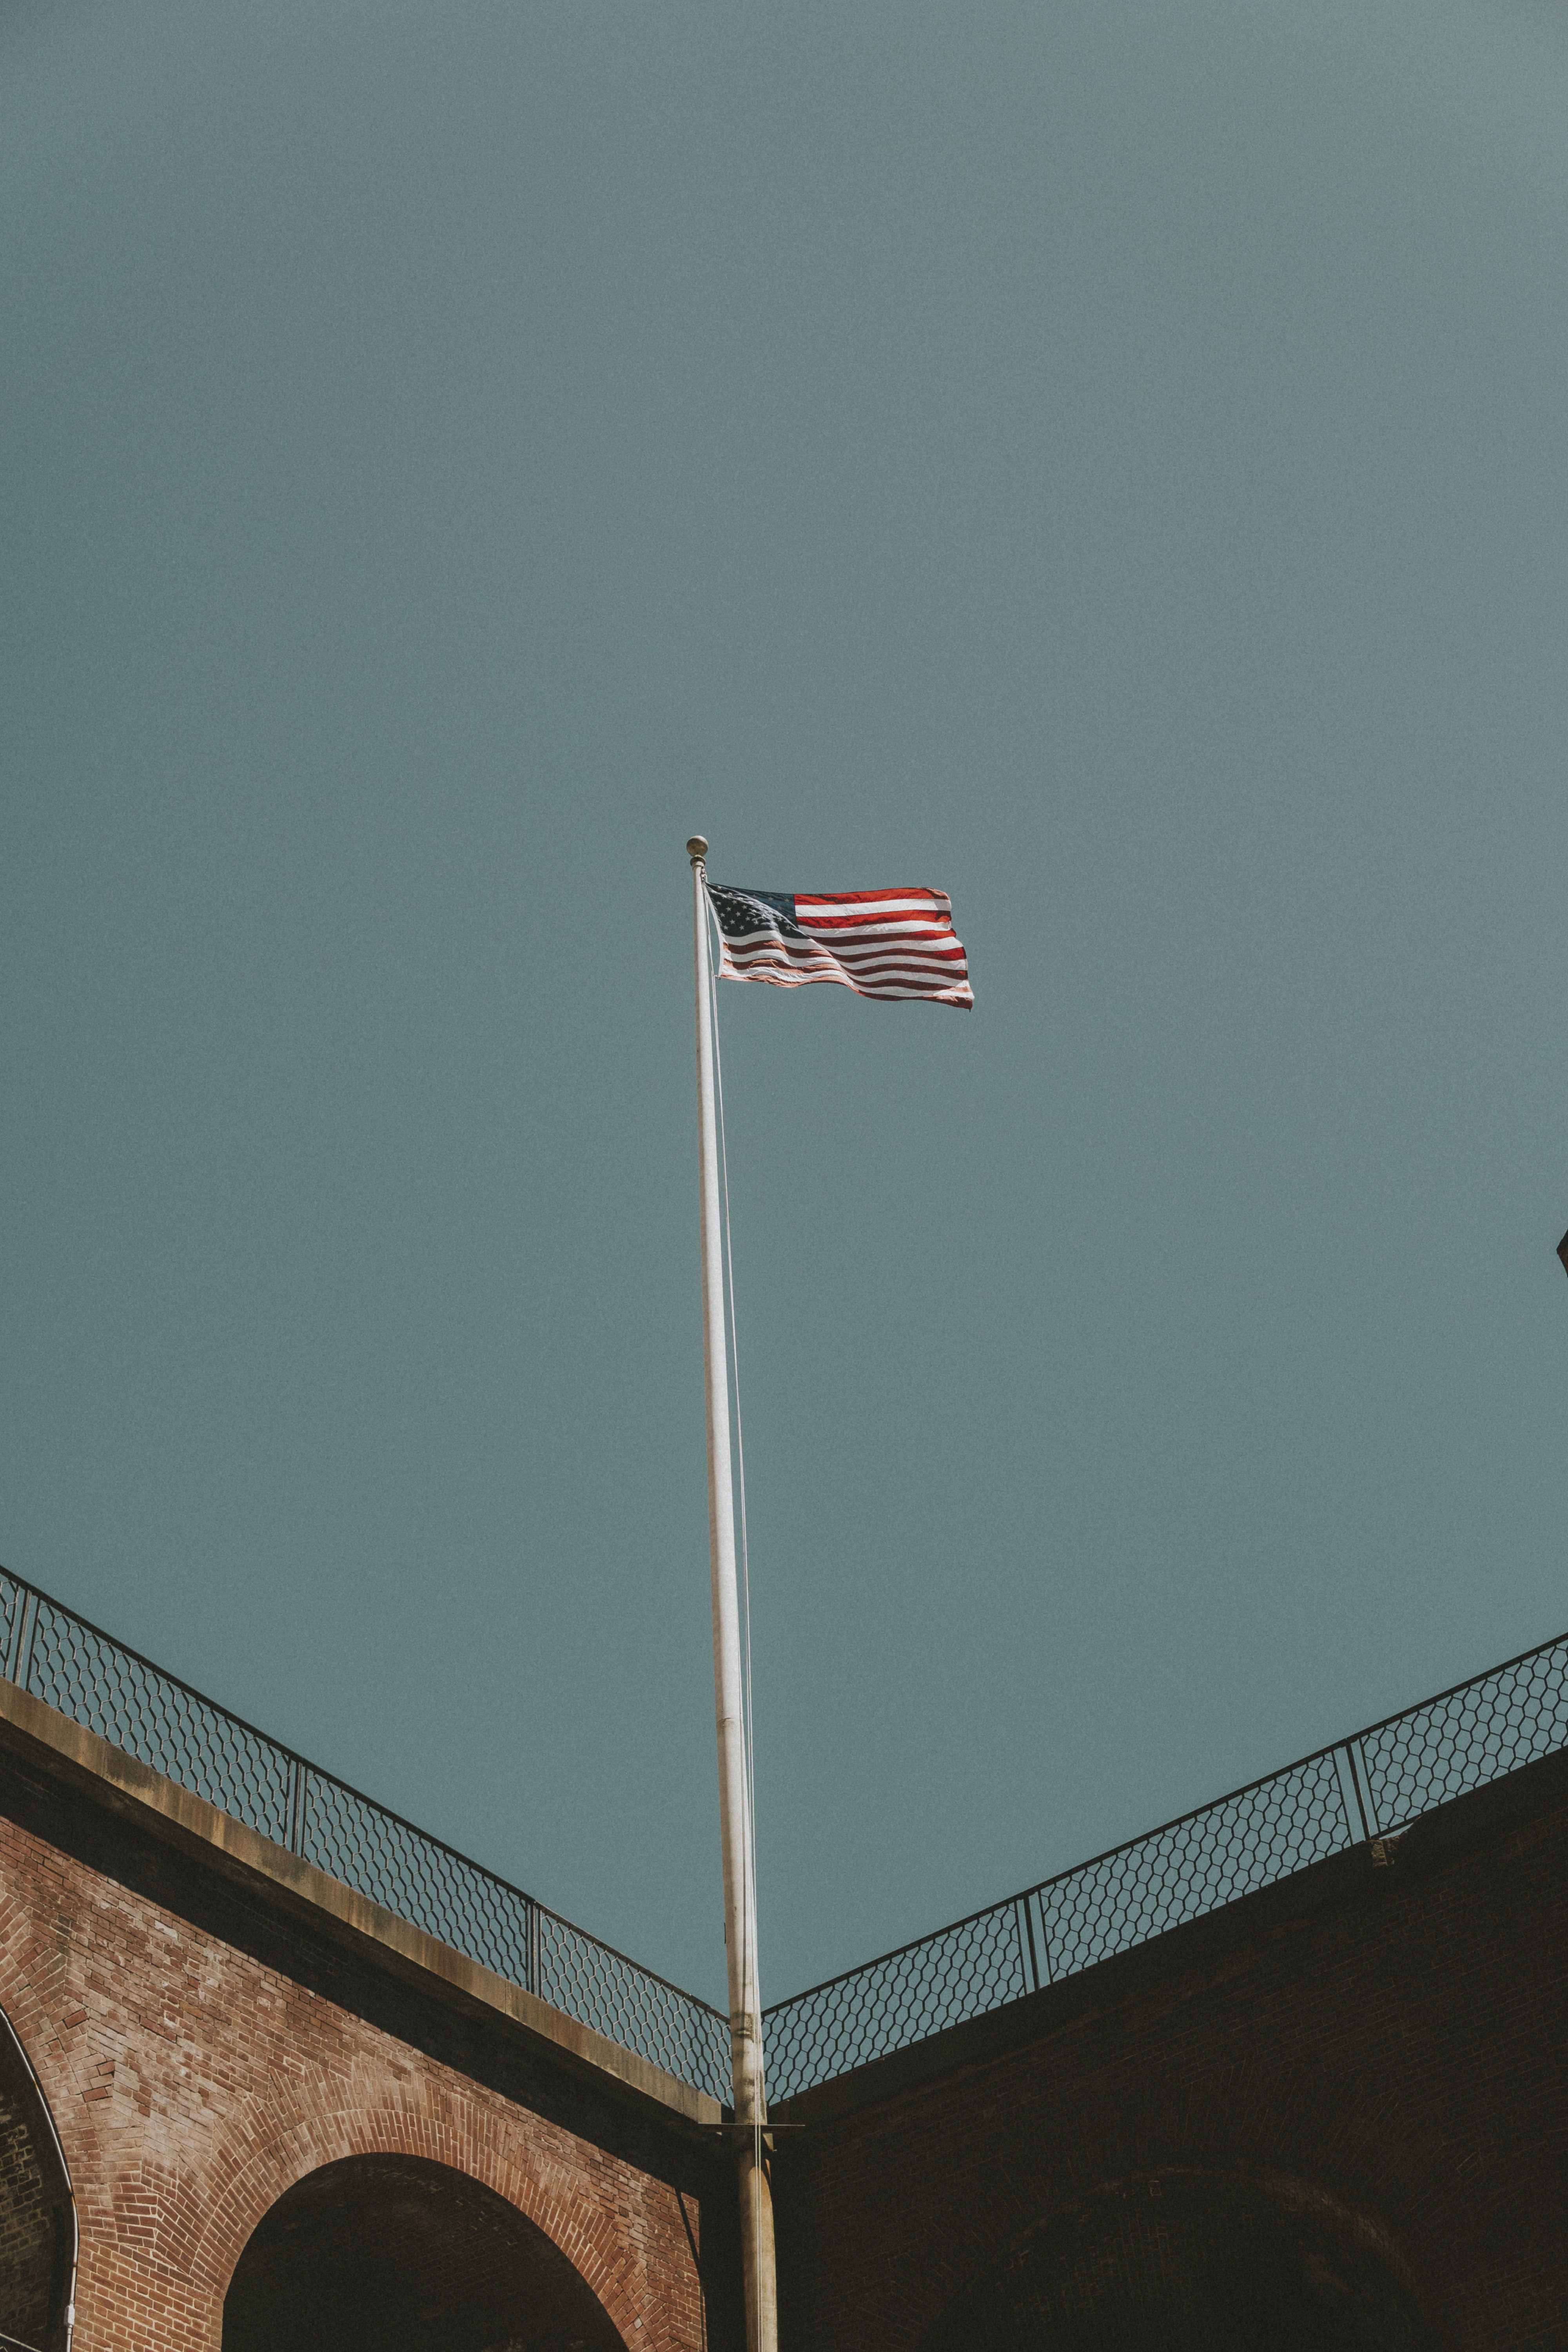 flag of U.S.A. on top of flagpole